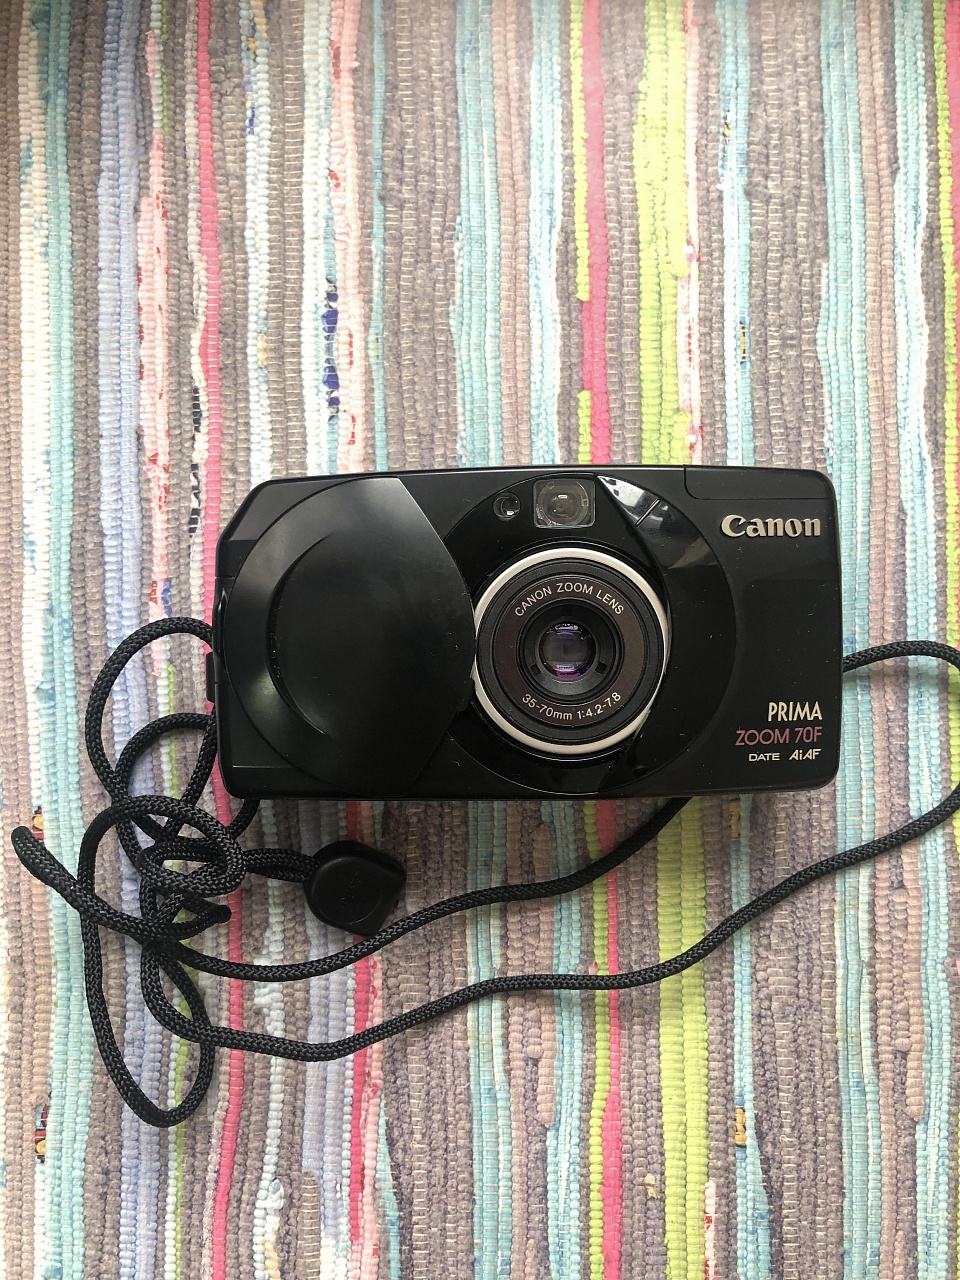 Canon Sure Shot 70 Zoom/Prima Zoom 70F (уценка) фото №1